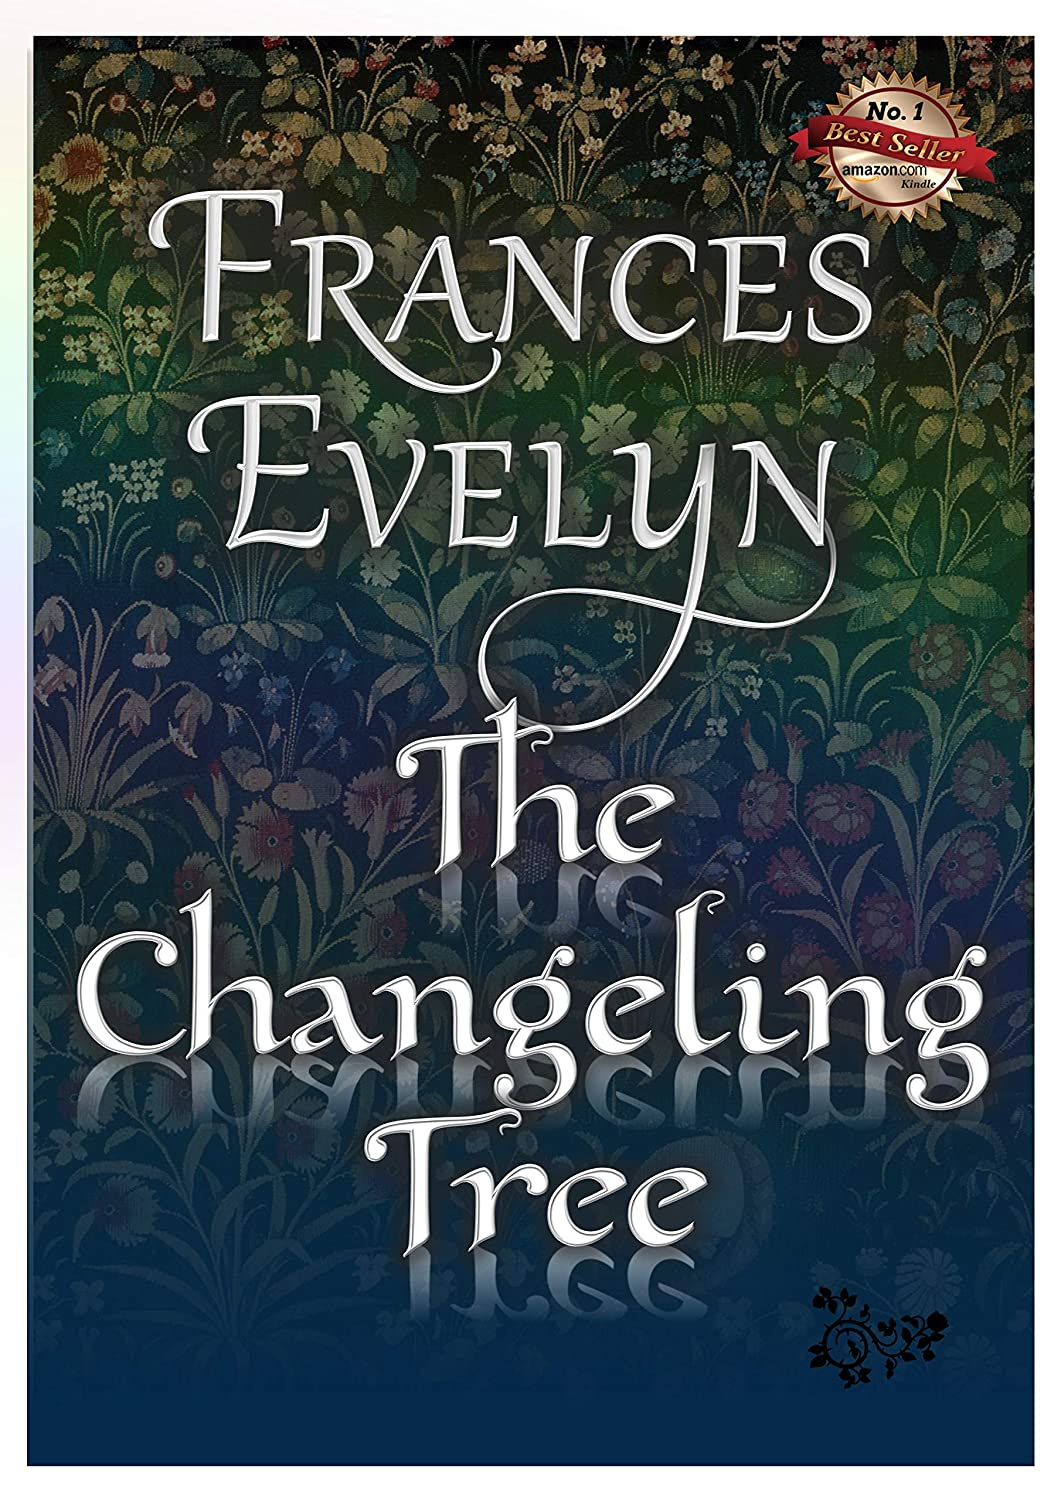 The Changeling Tree (English Edition) eBook: Frances Evelyn ...